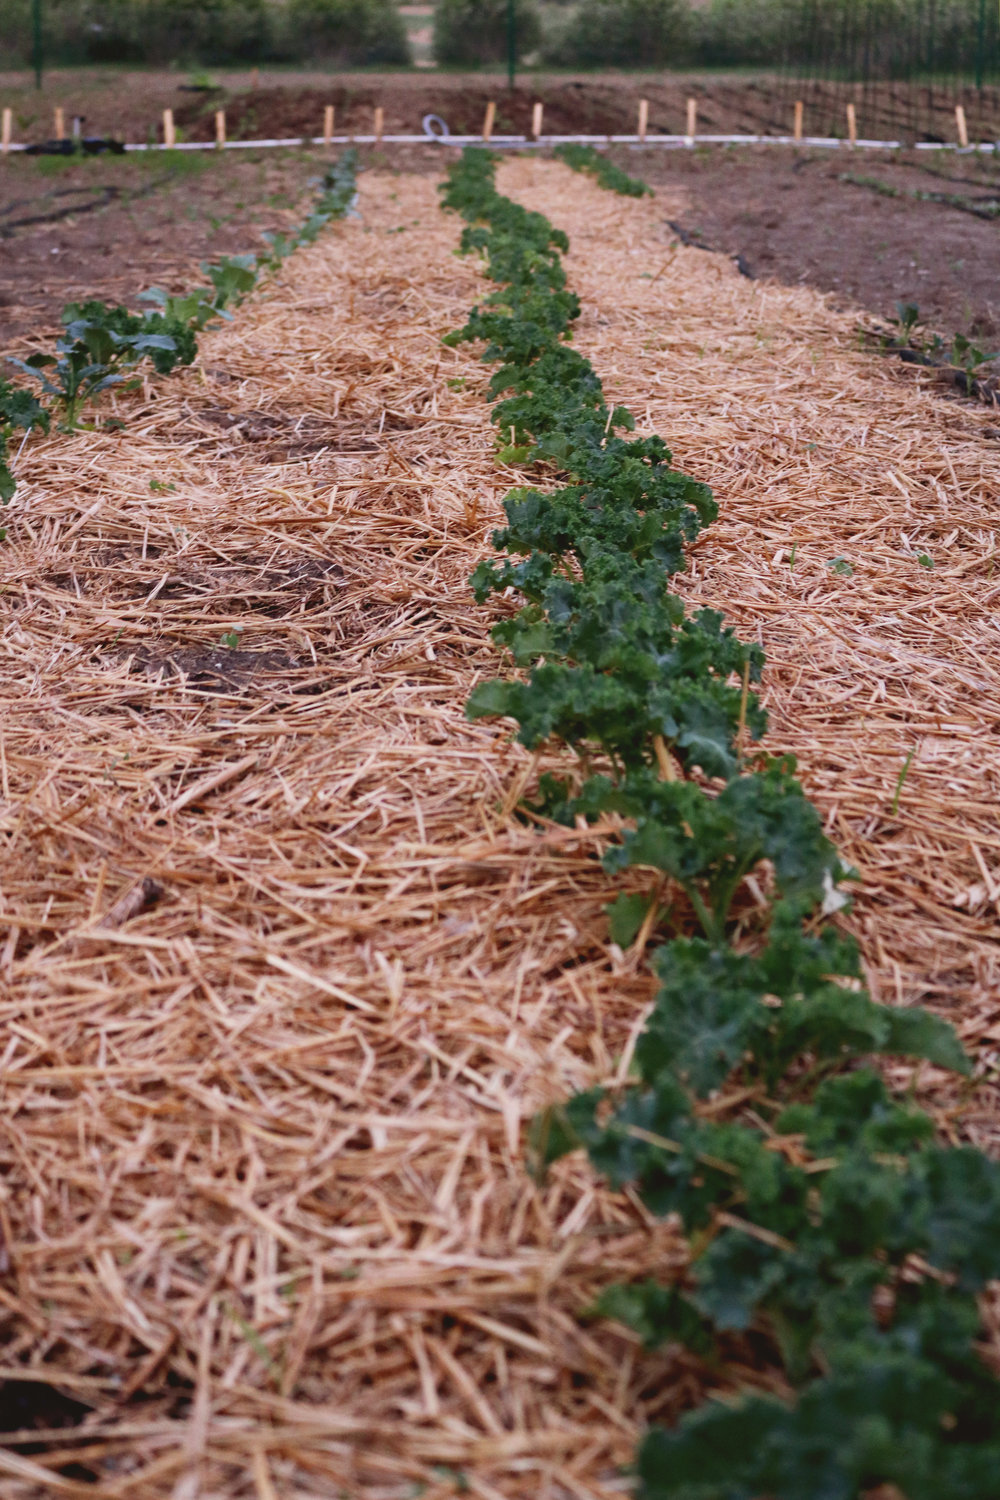 Mulches To Use For No Till Gardening Under A Tin Roof